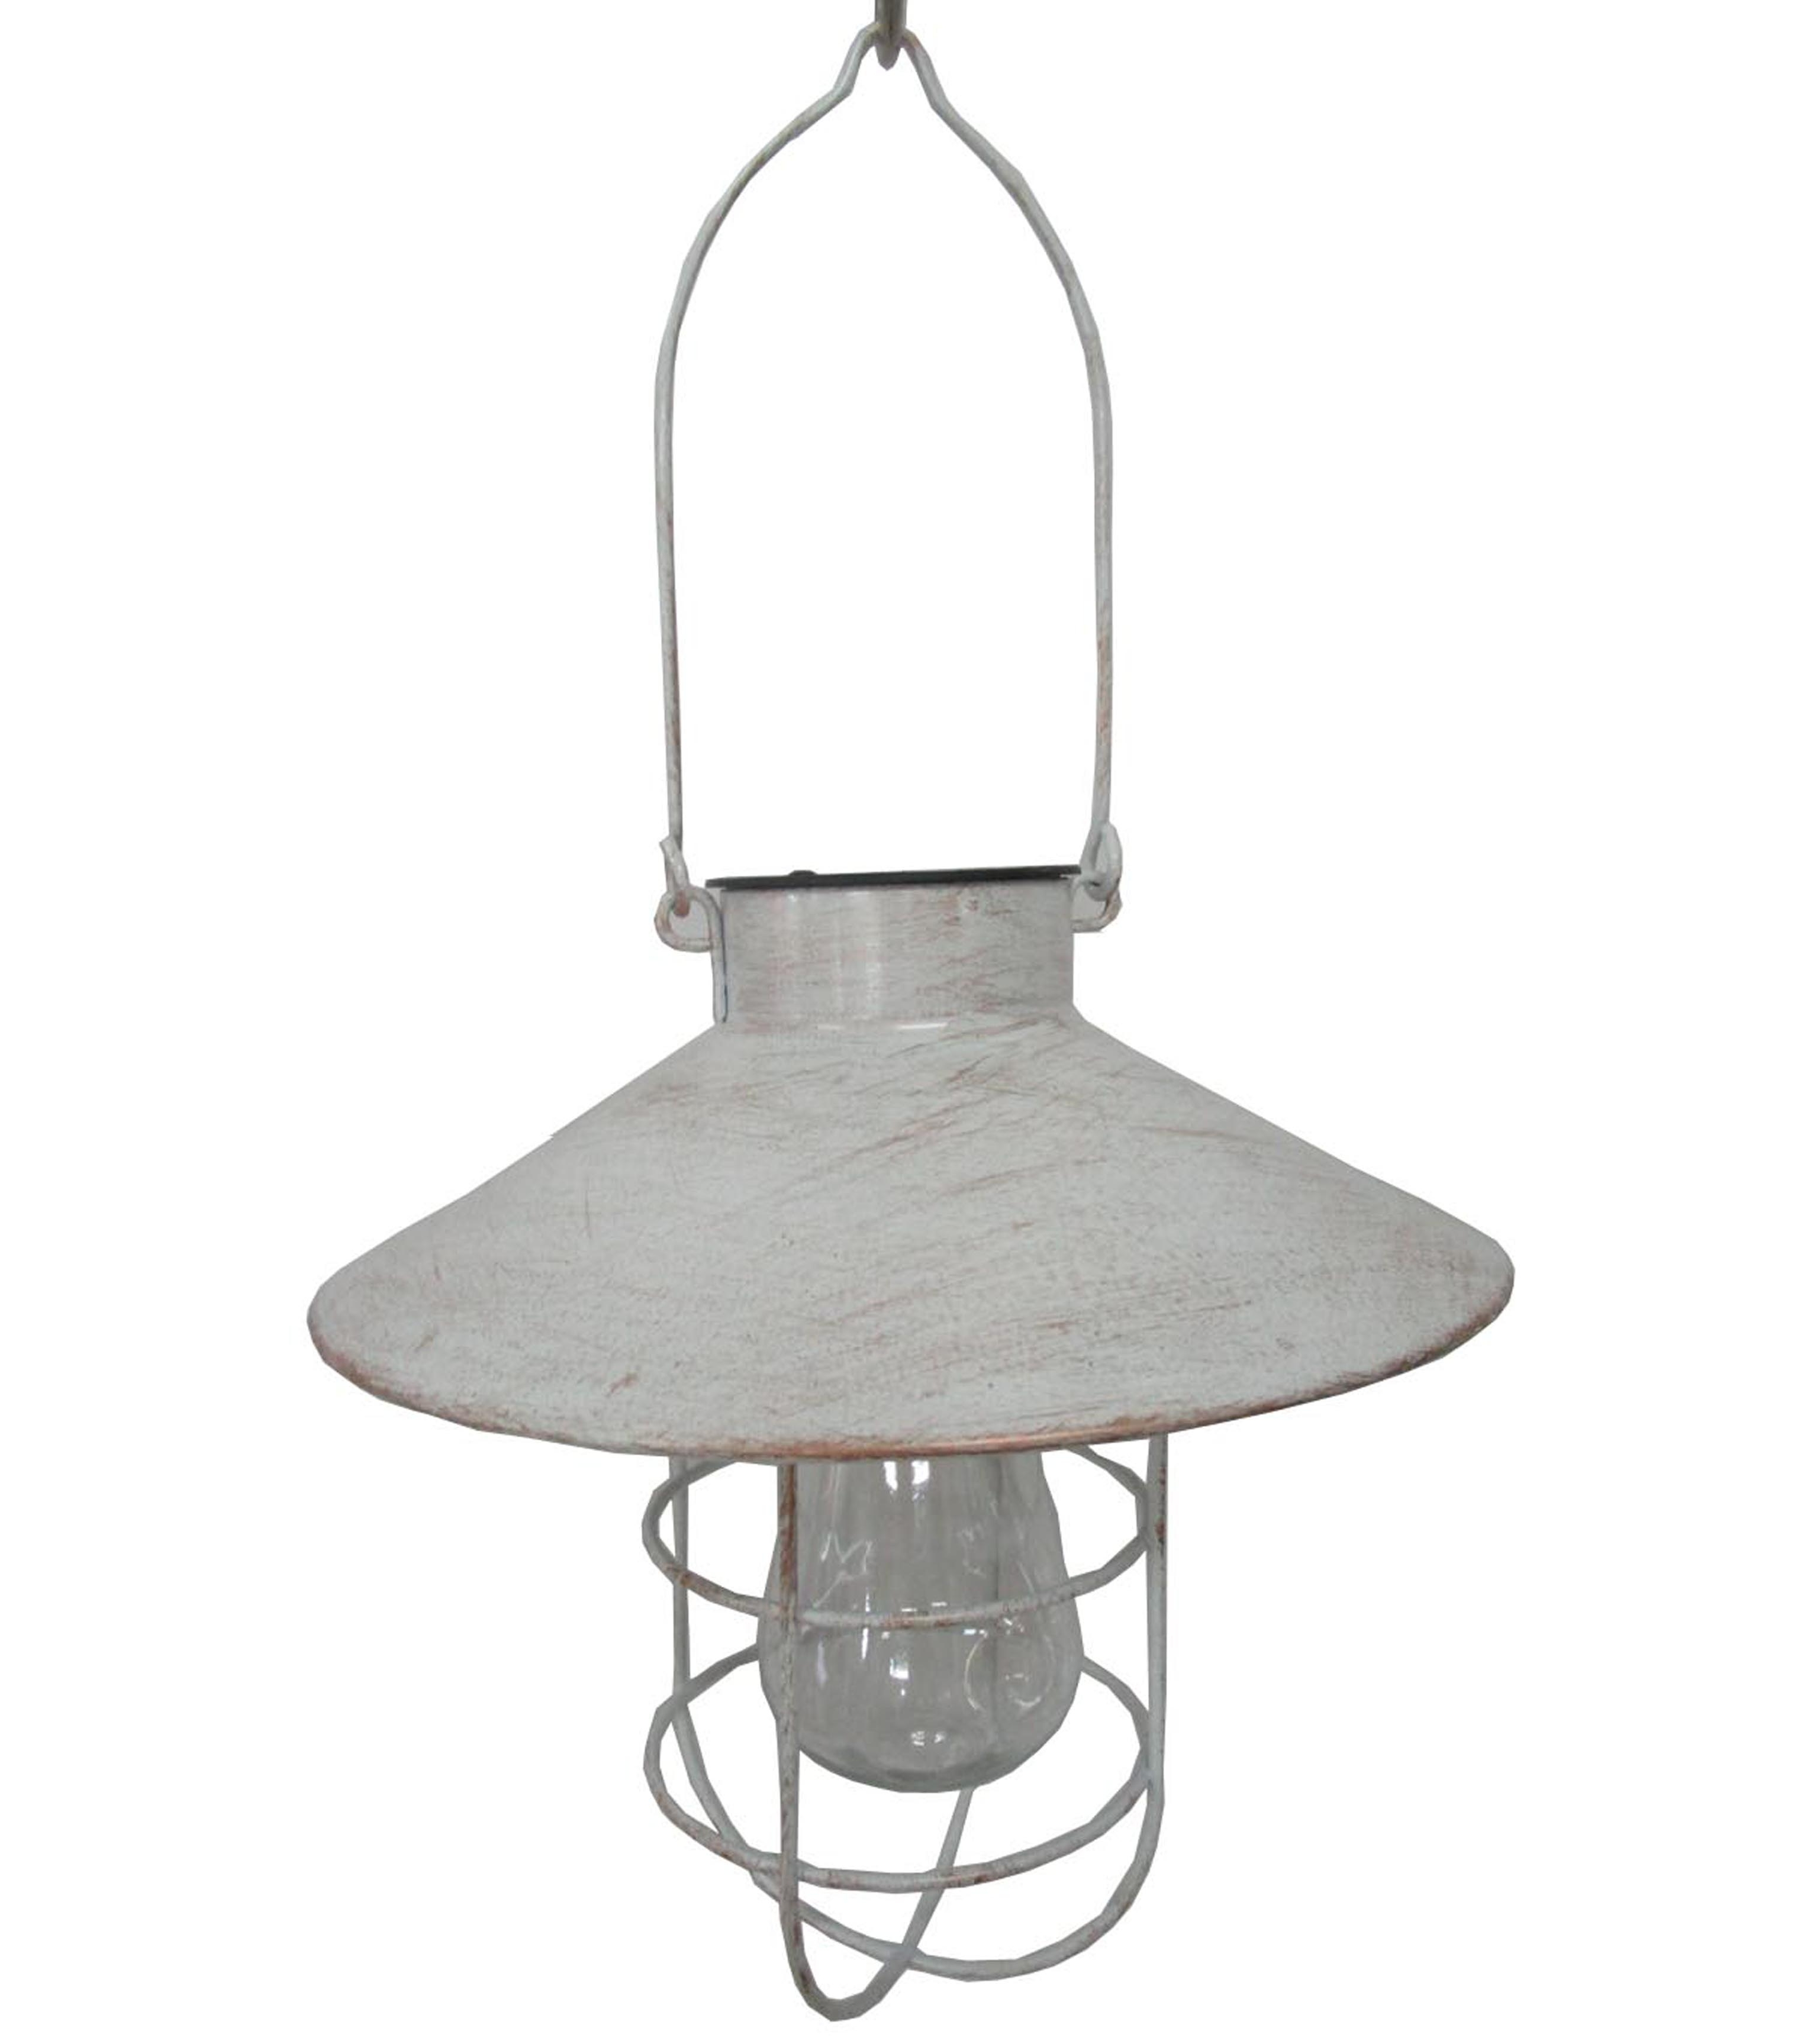 Joann Pertaining To Popular Joanns Outdoor Lanterns (View 13 of 20)